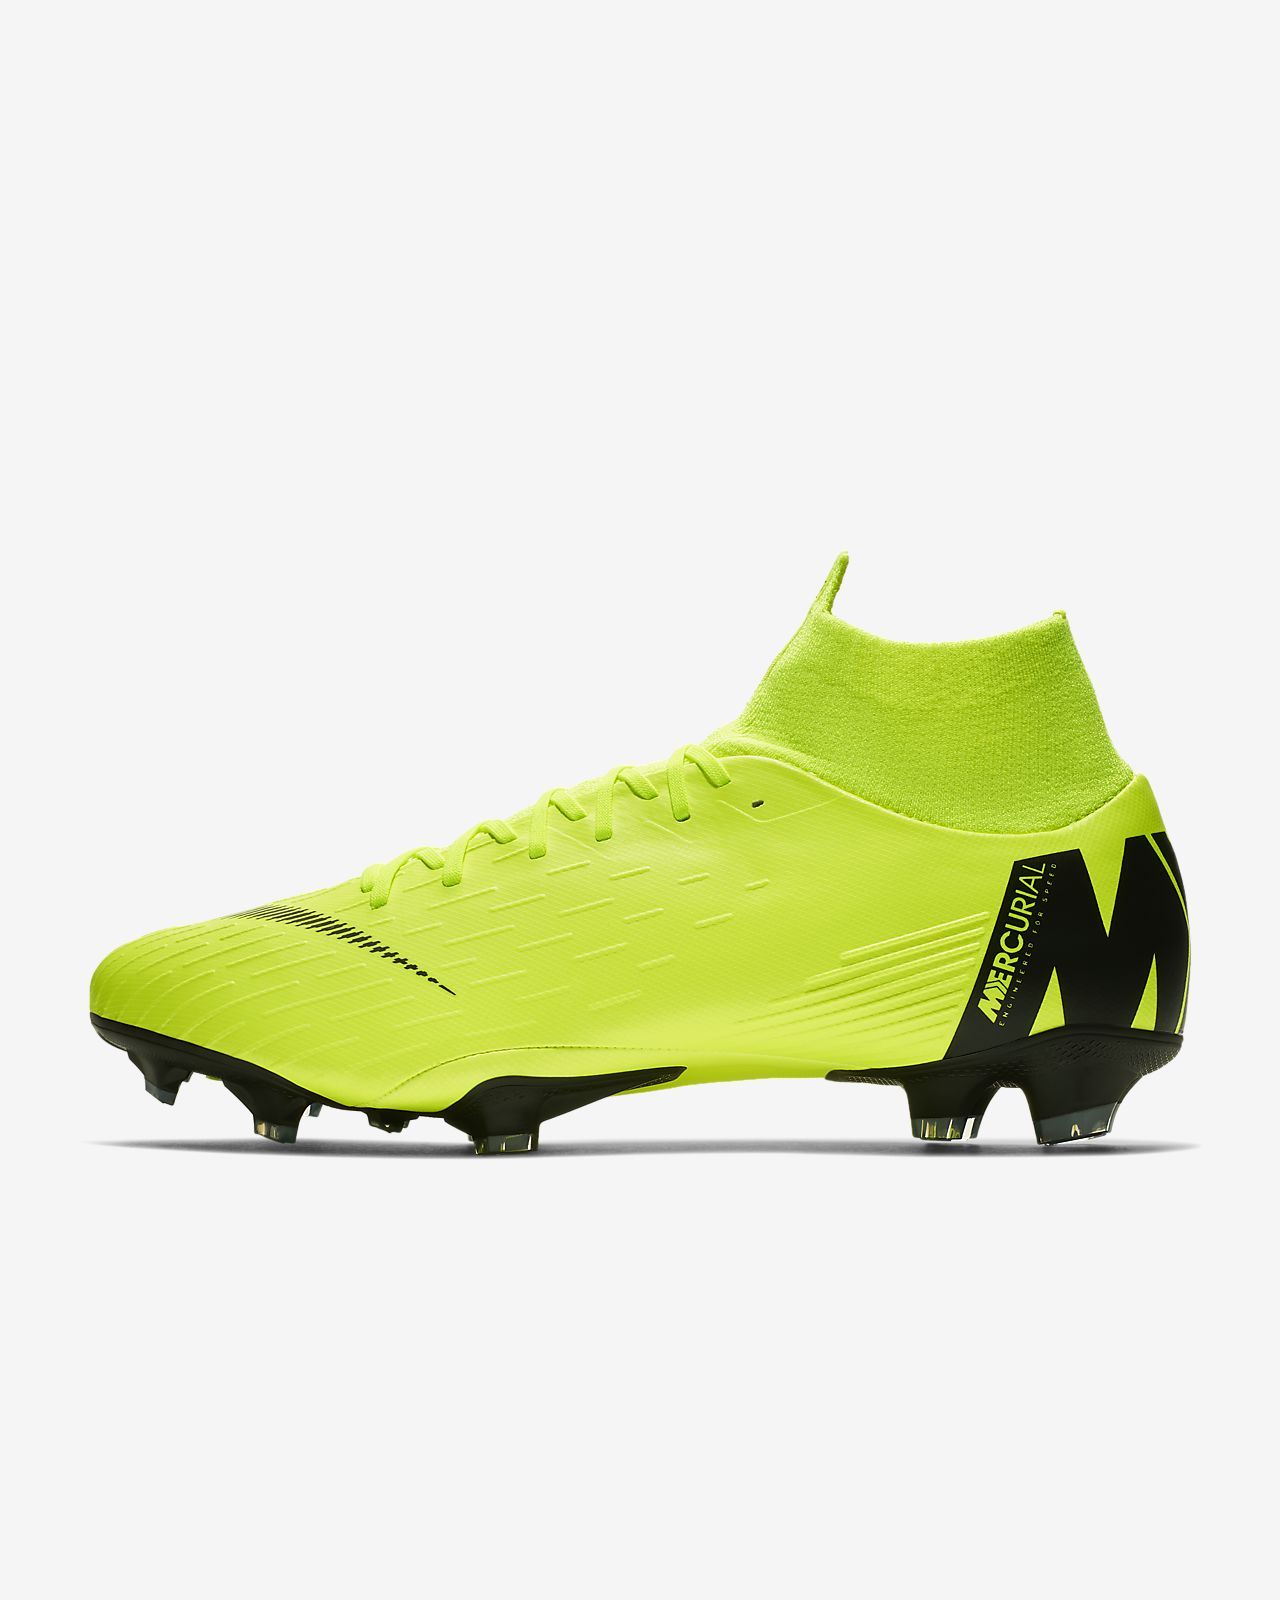 separation shoes f58ce 03759 ... reduced nike mercurial superfly vi pro fotballsko til gress 5fe76 a3dc5